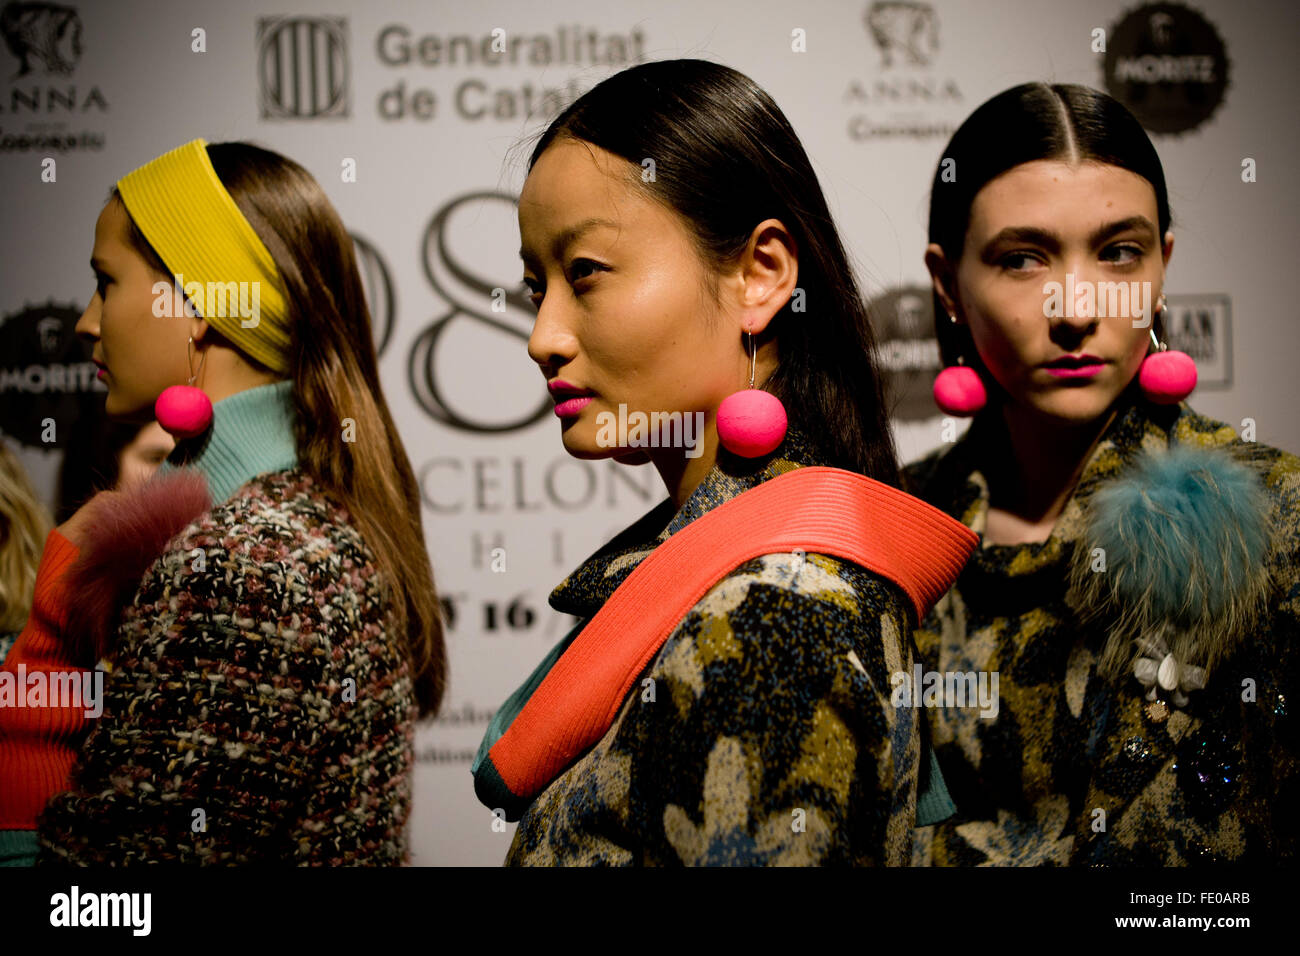 Barcelona, Spain. 3rd February, 2016. Models dressed in Naulover design are seen moments before going to catwalk - Stock Image